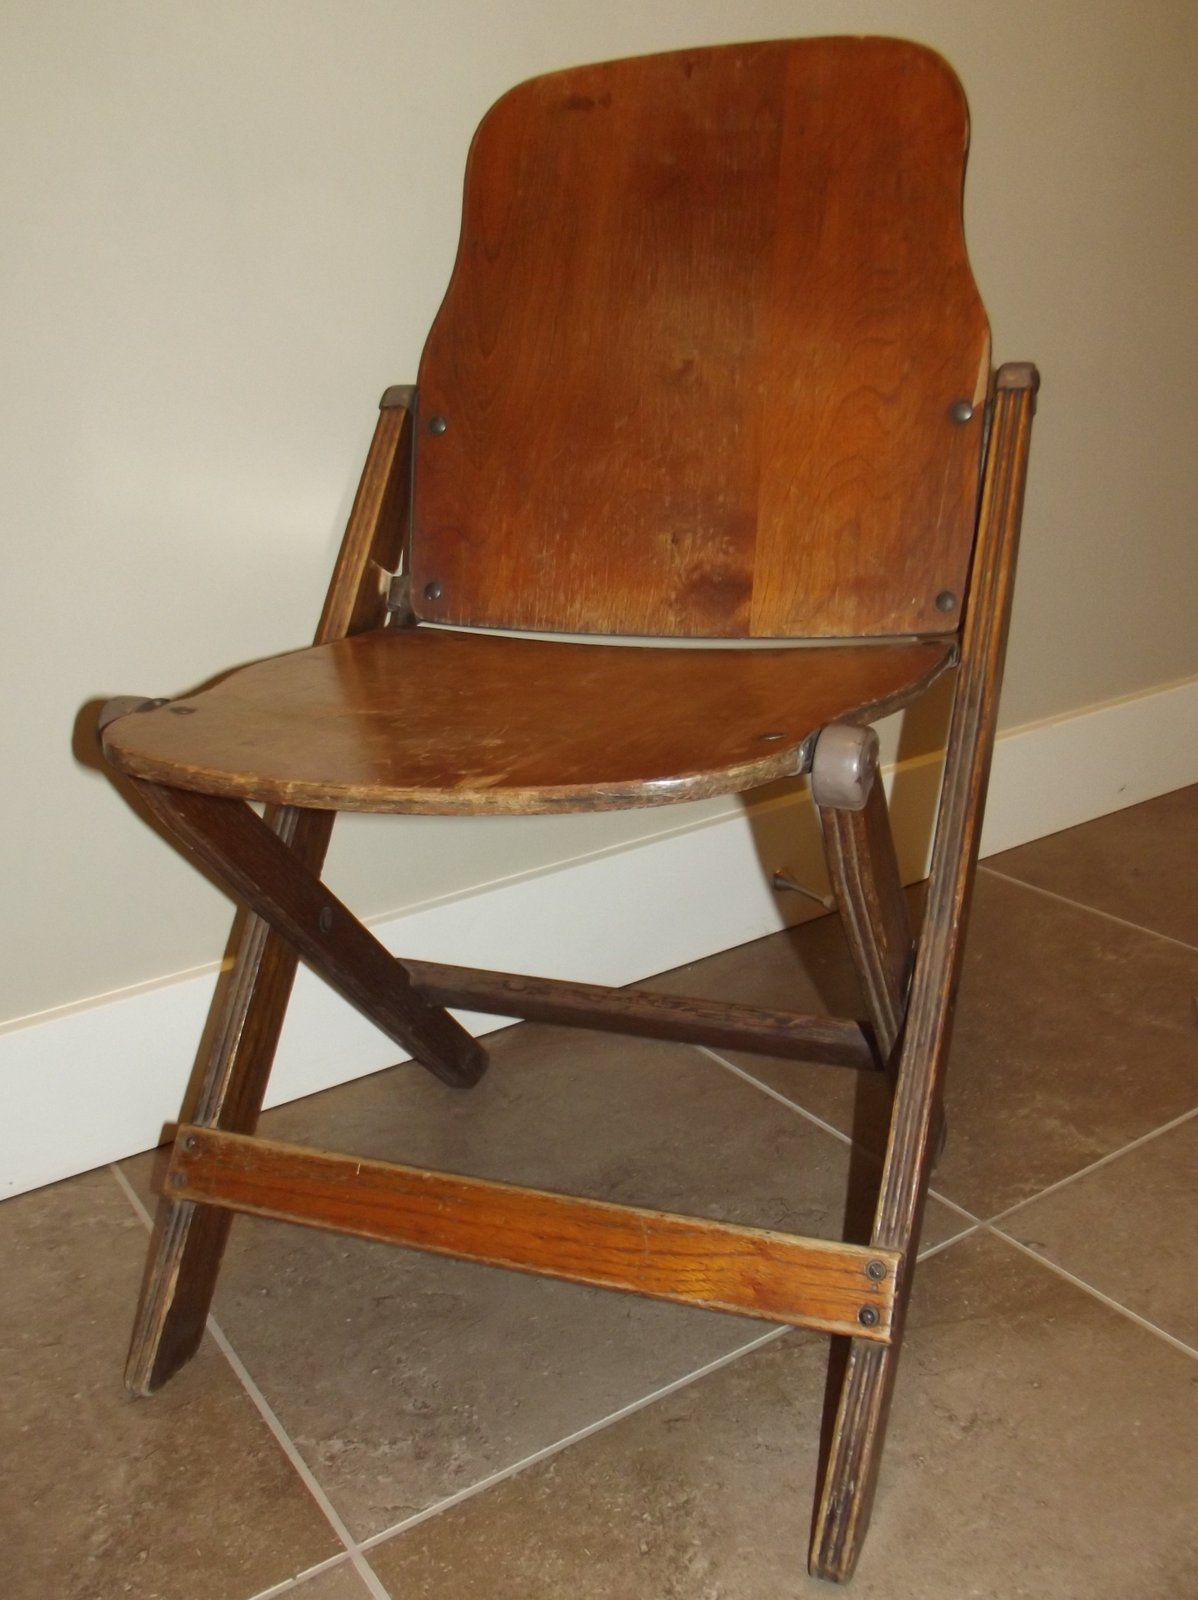 A vintage folding plywood chair - Sustainable Slow Stylish: A Vintage Folding Plywood Chair